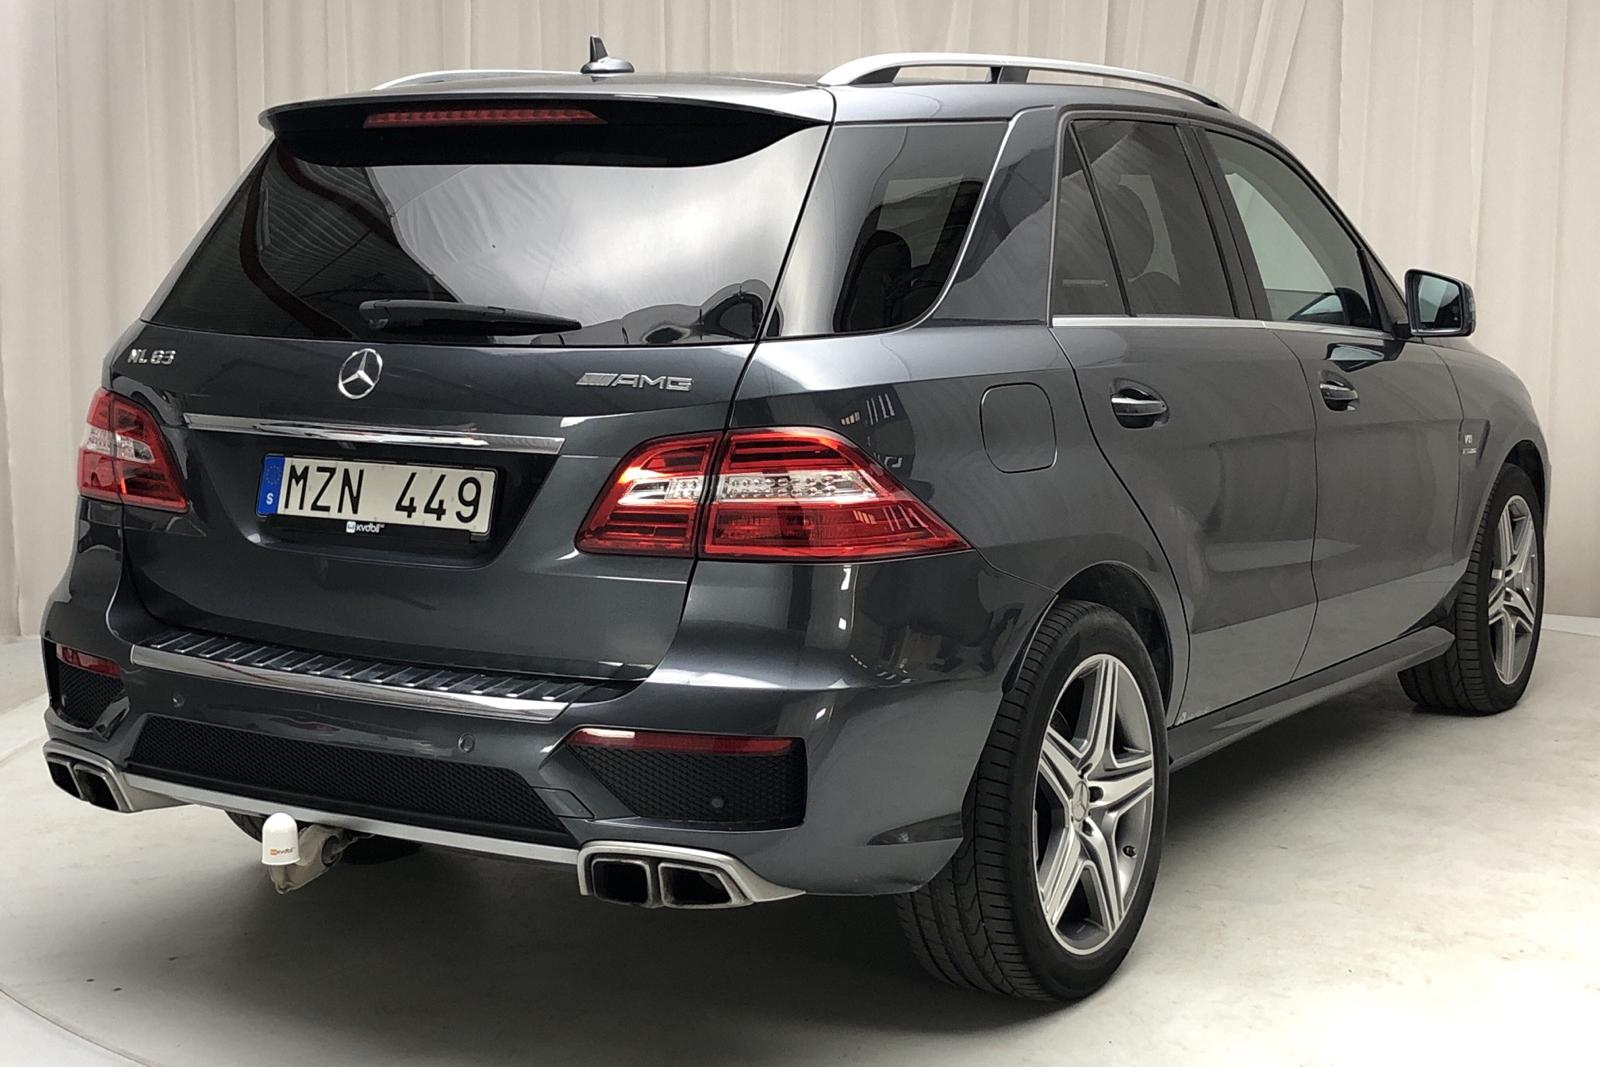 Mercedes ML 63 AMG Performance Package W166 (558hk) - 86 000 km - Dark Grey - 2013